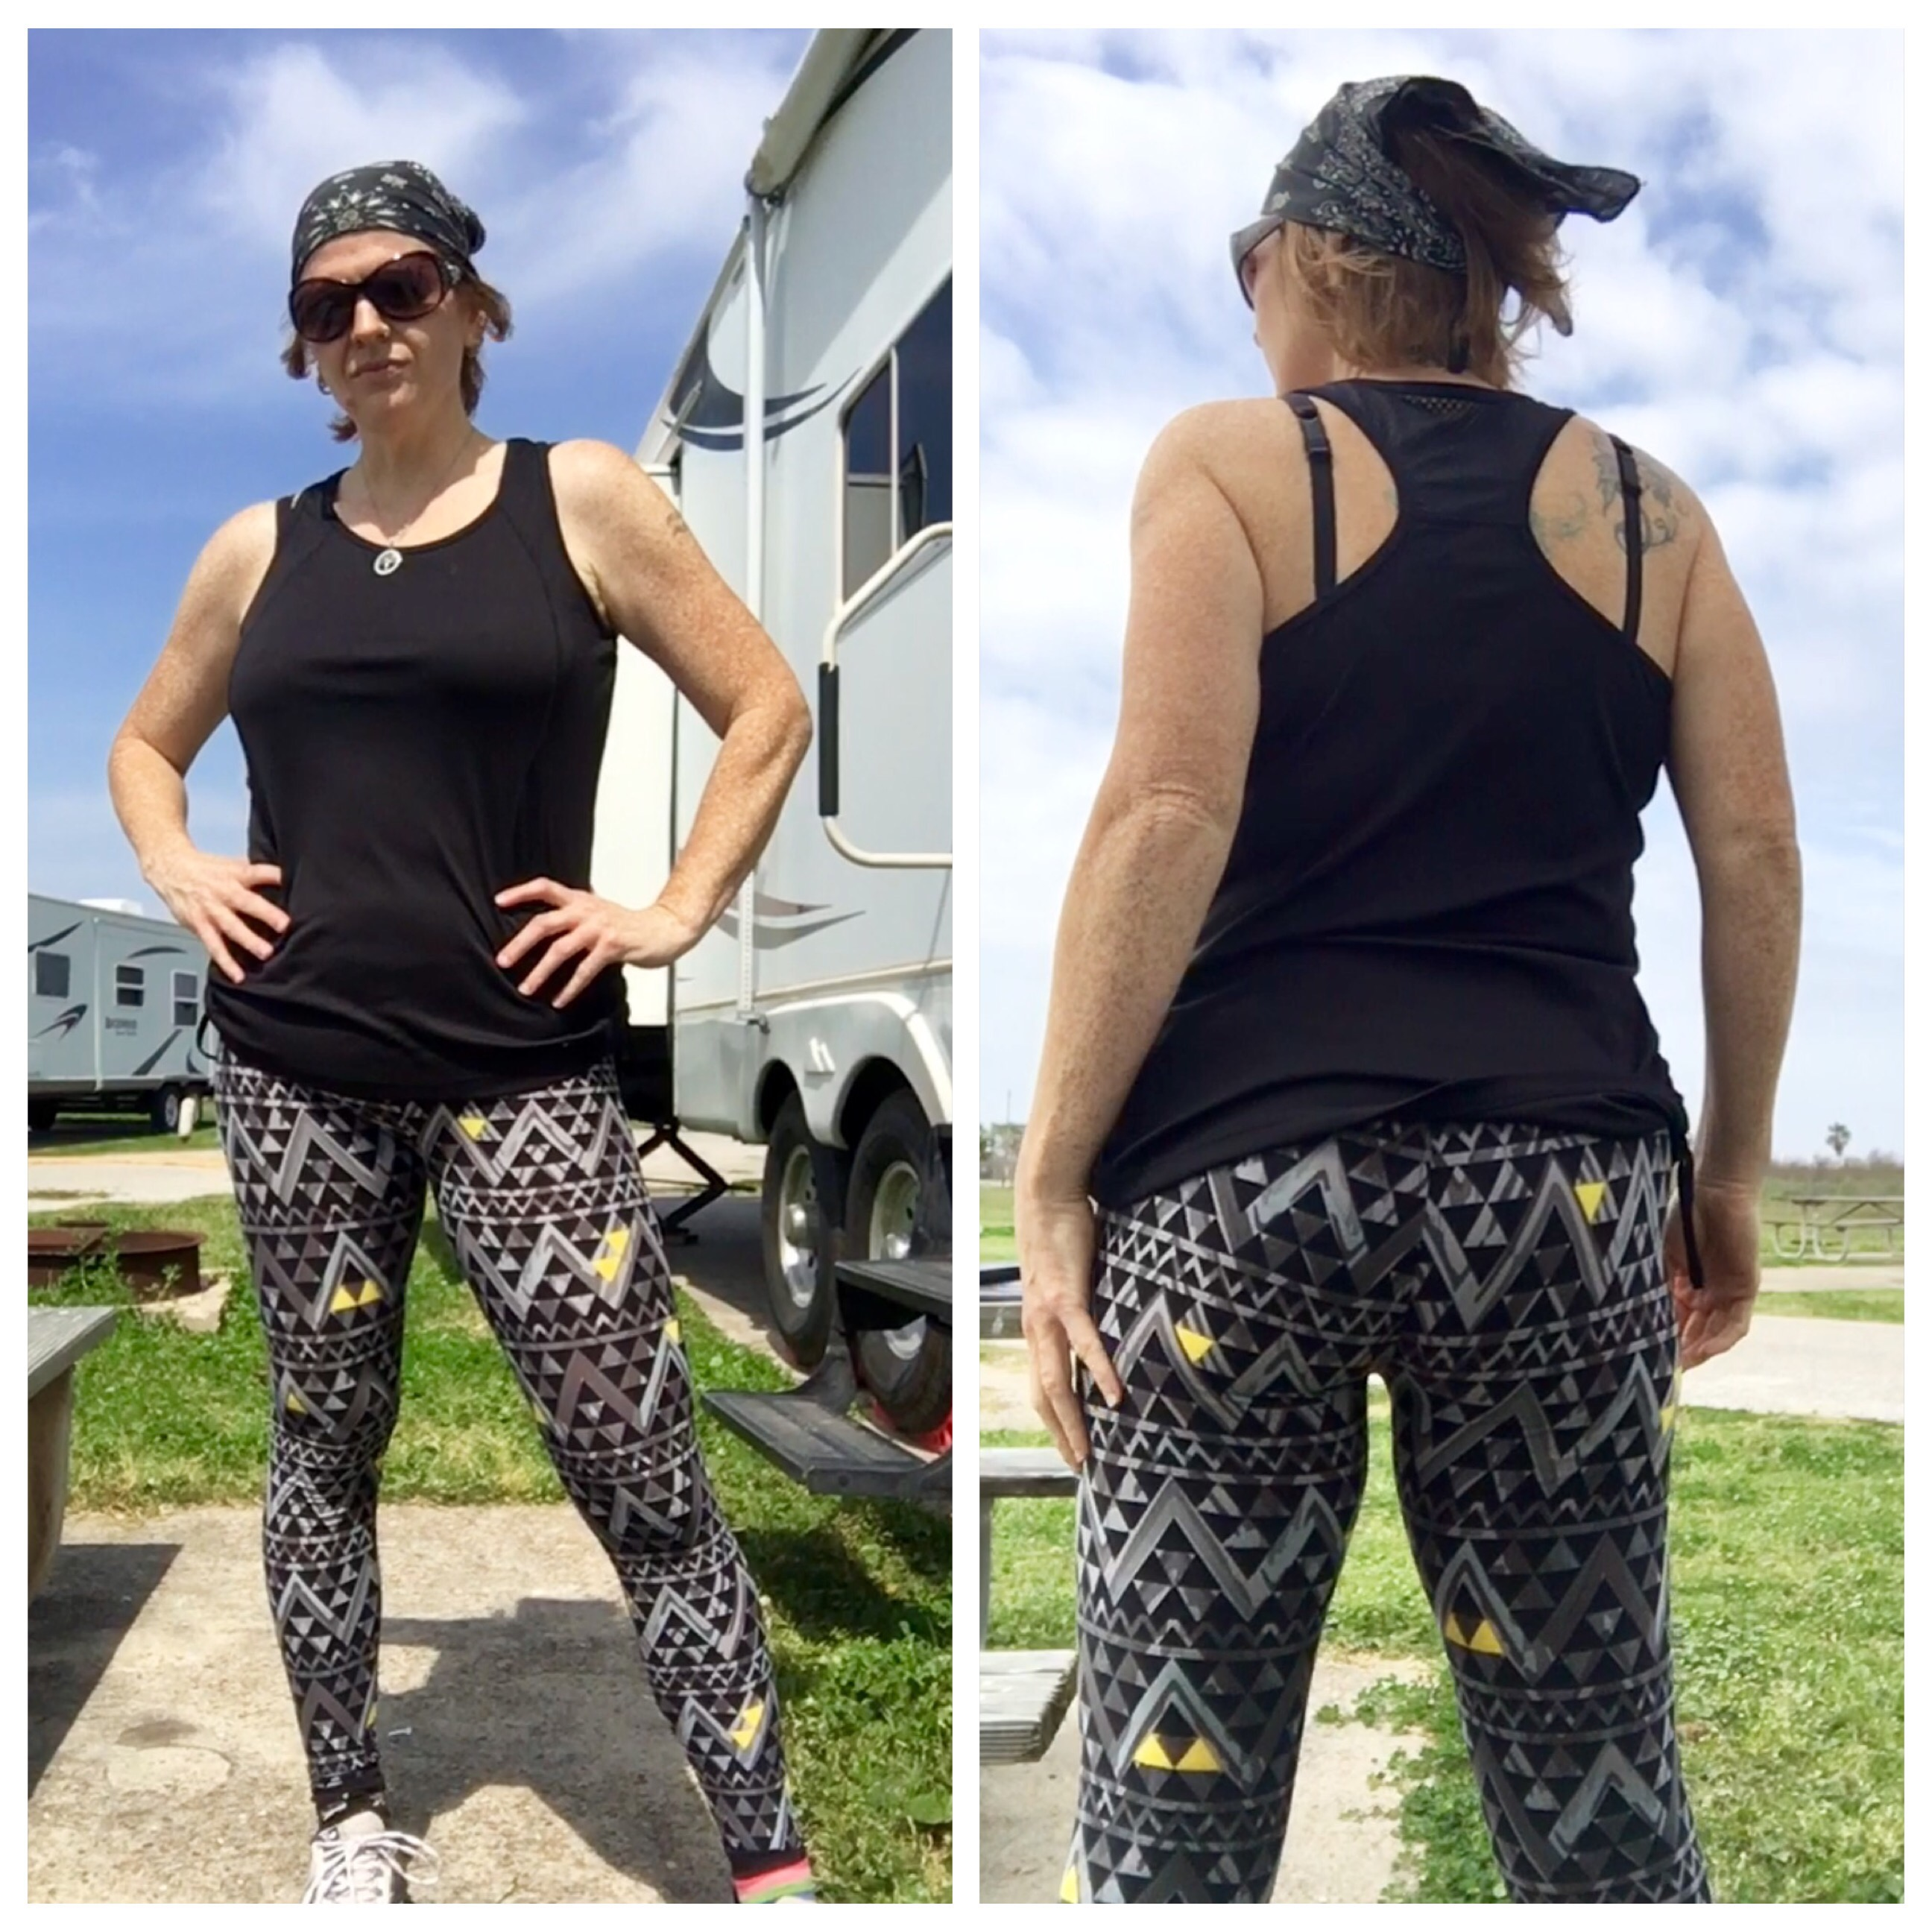 d88b6a700de599 I was so excited to try exercising in them, and thought a little Total Body  Hammer from my Hammer and Chisel program sounded perfect!